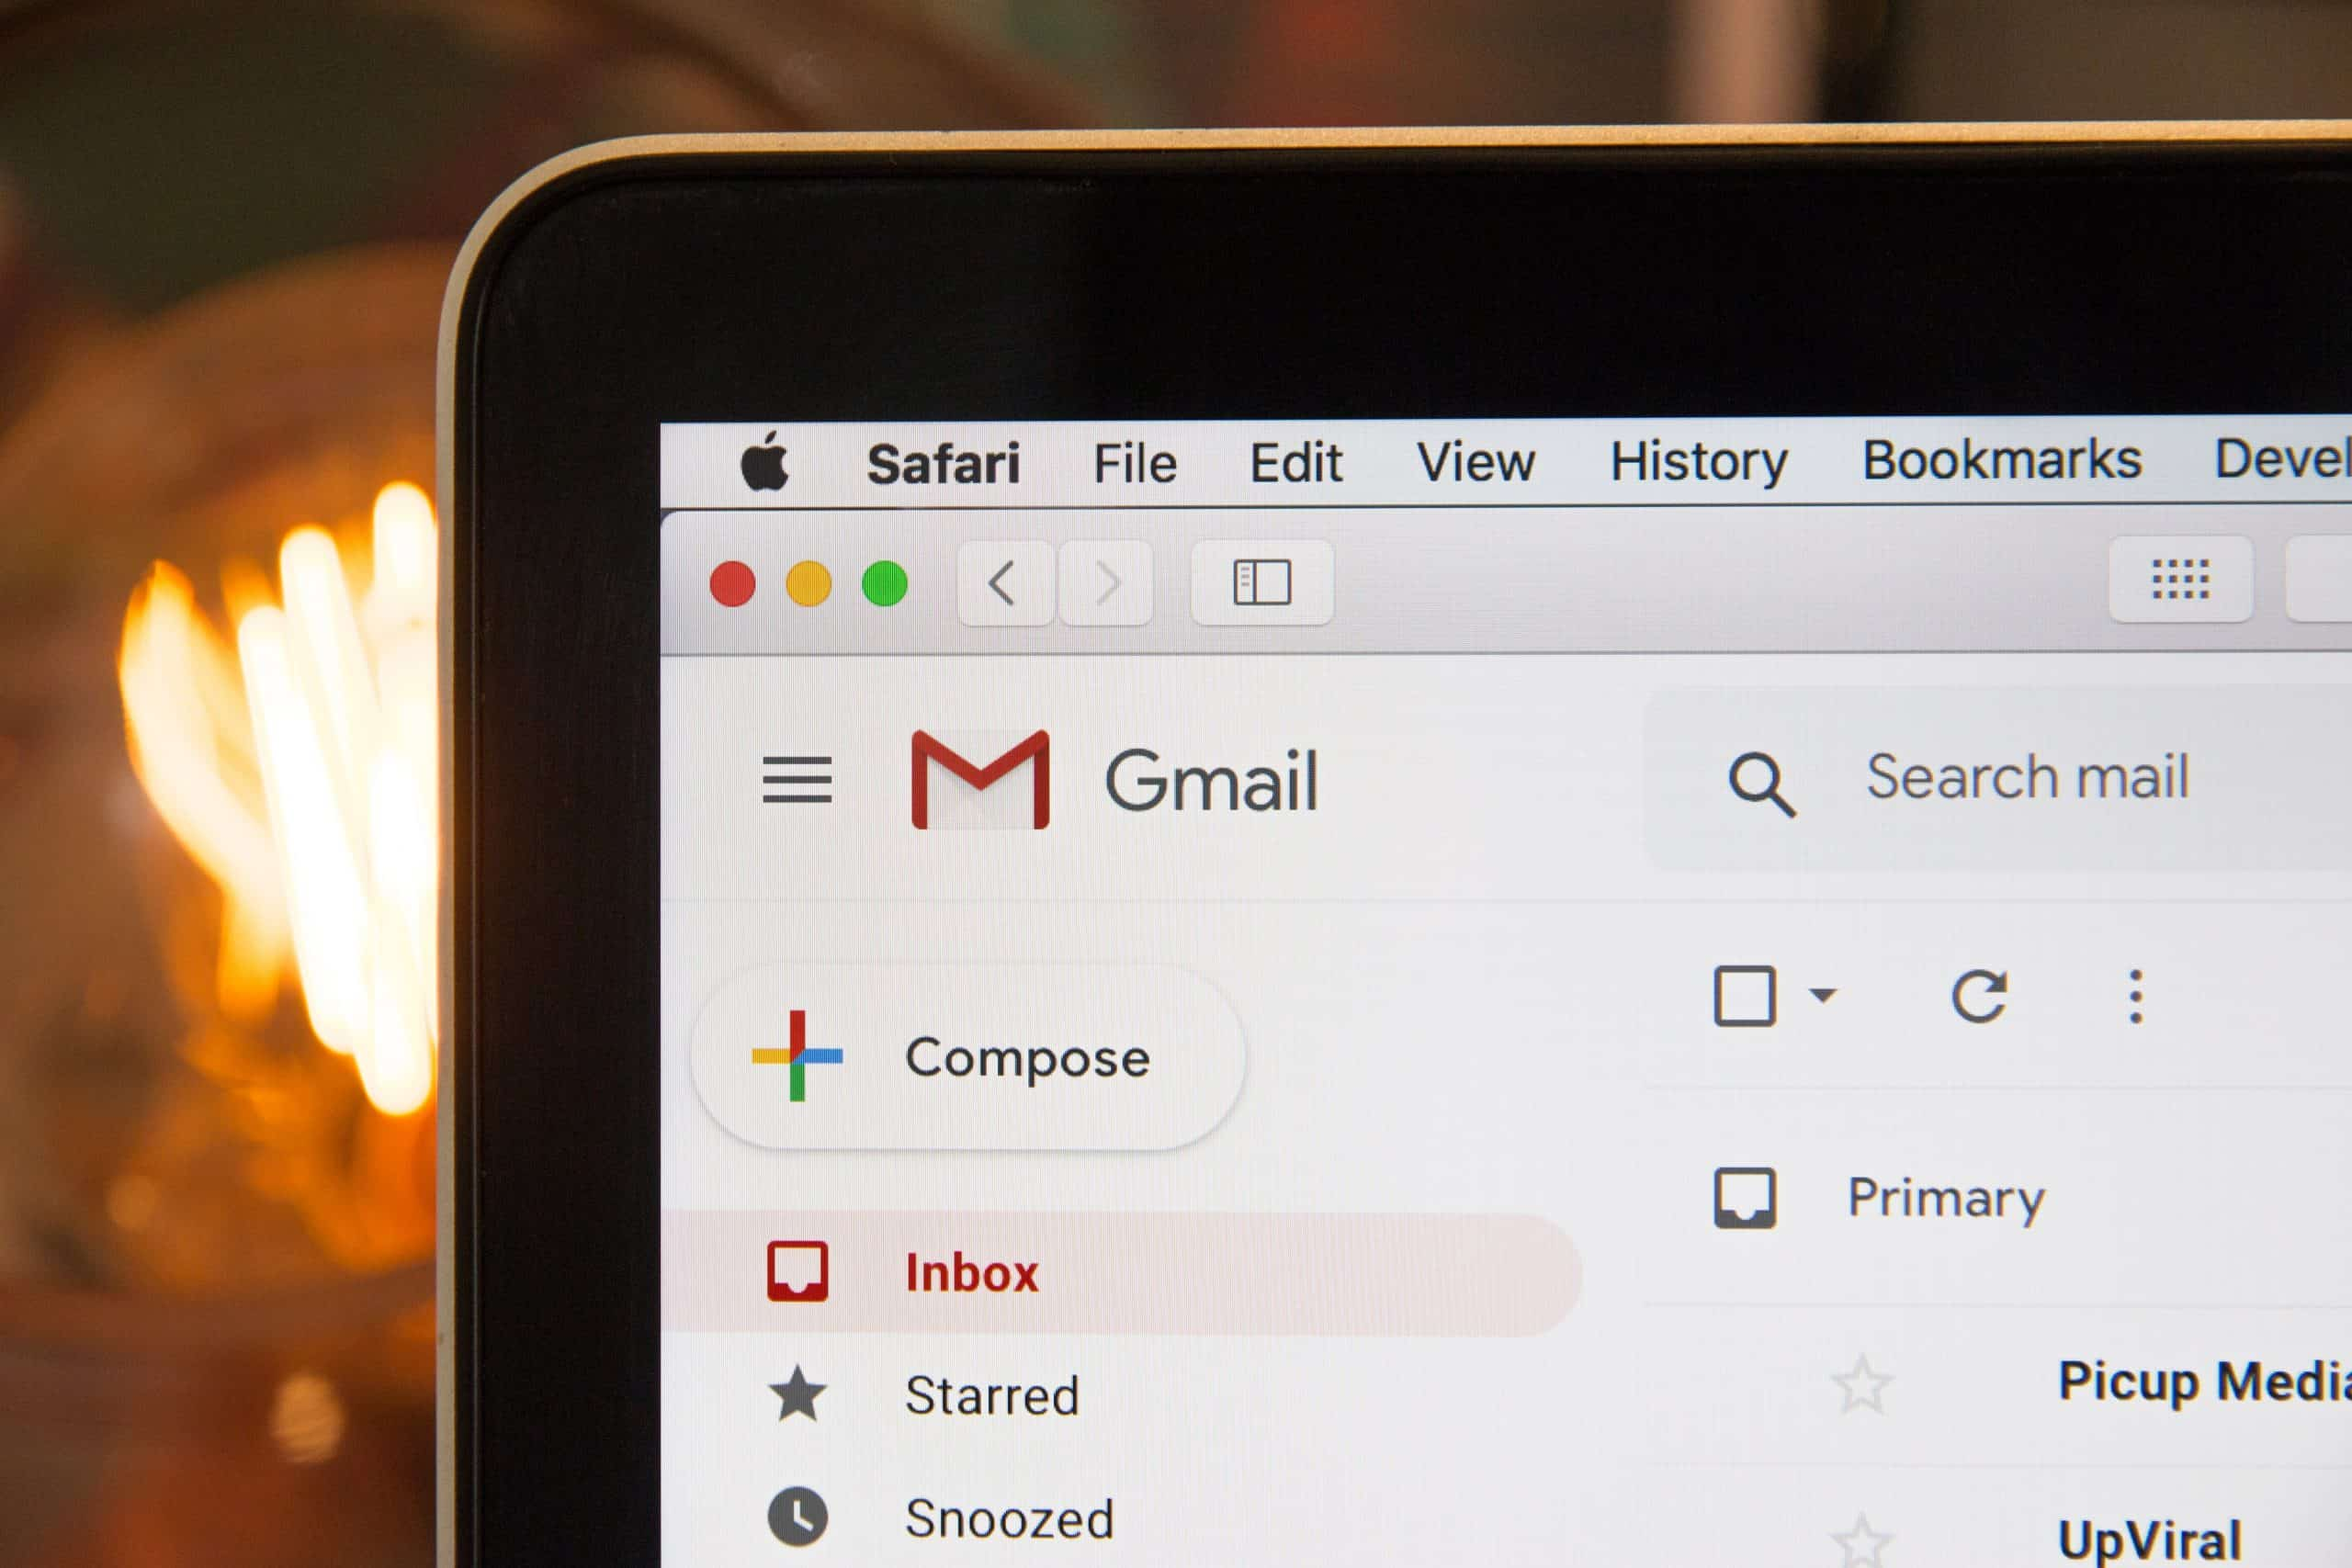 gmail email on a computer